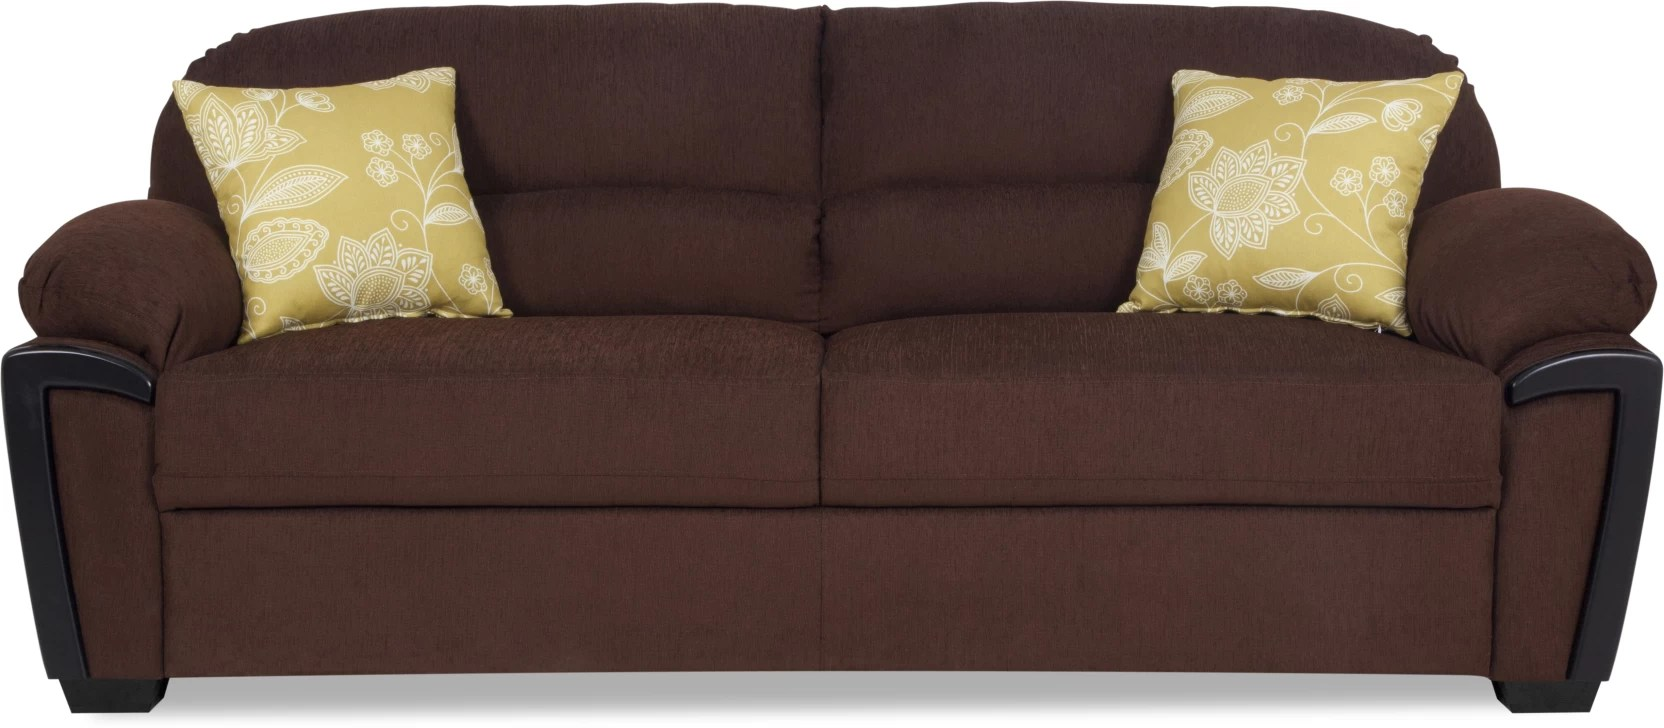 Sofa Bed Abu Dhabi Urban Living Abu Dhabi Royale Fabric 3 Seater Sofa Price In India